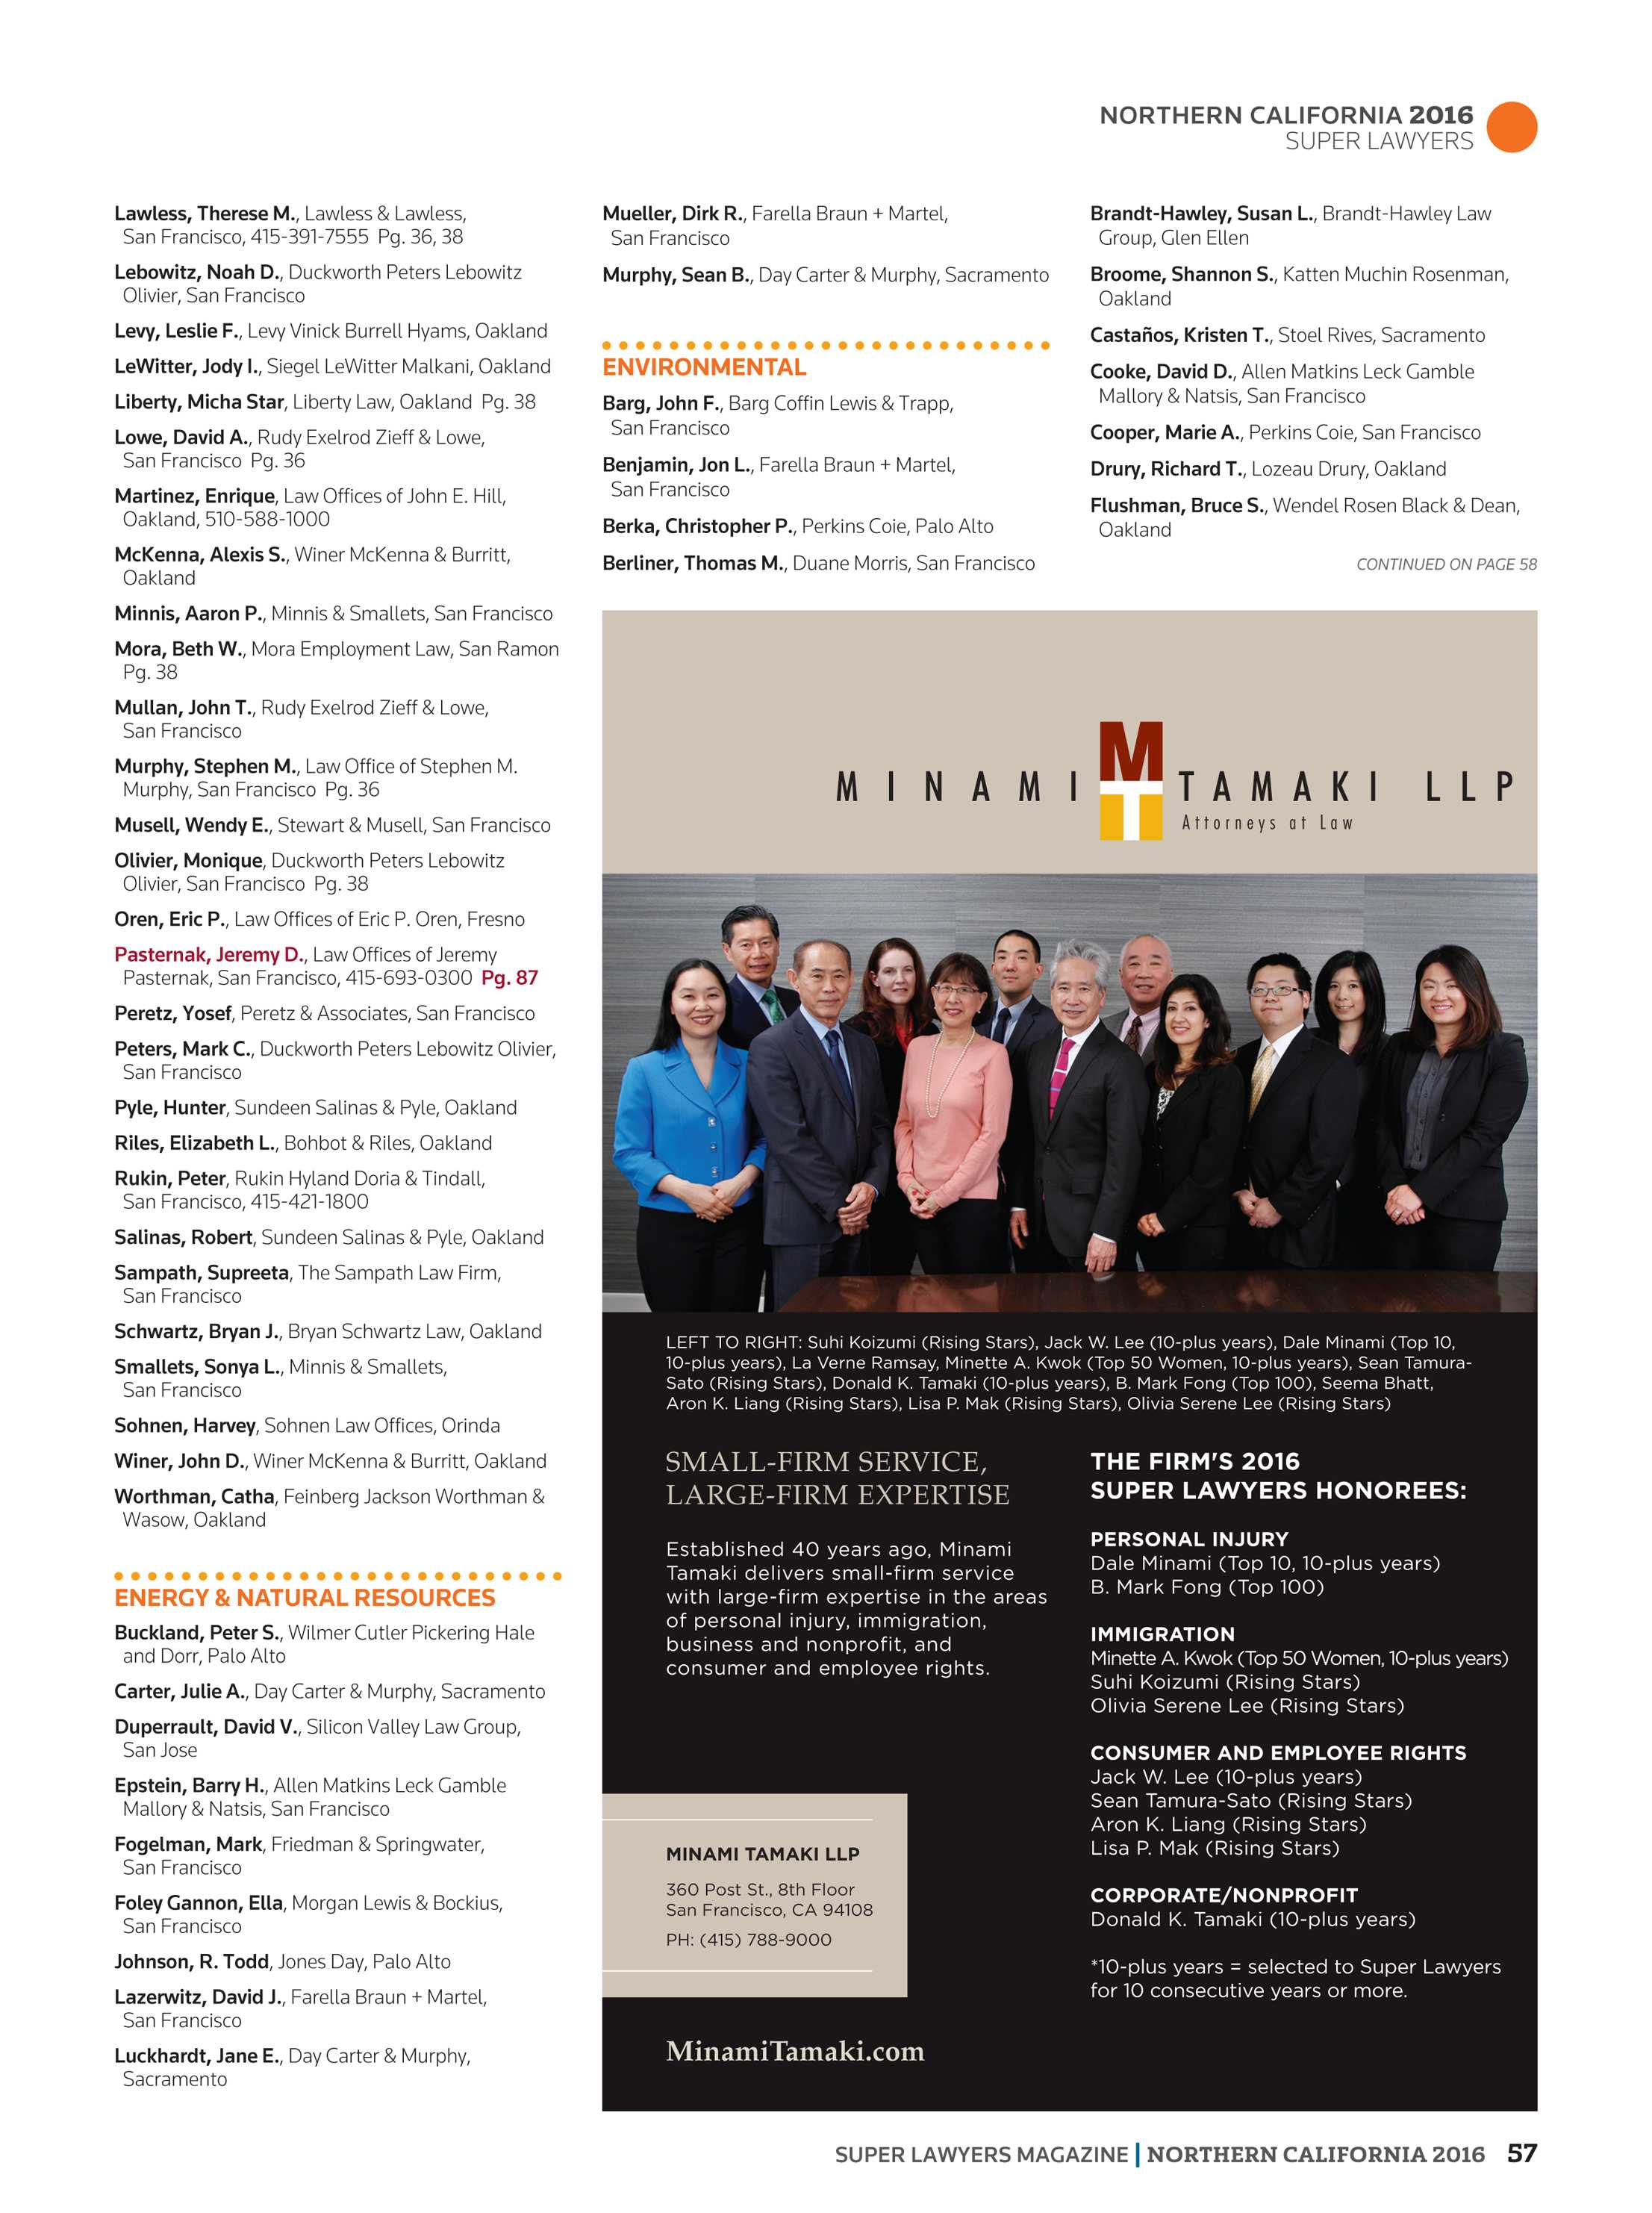 Super Lawyers - Northern California 2016 - page 57